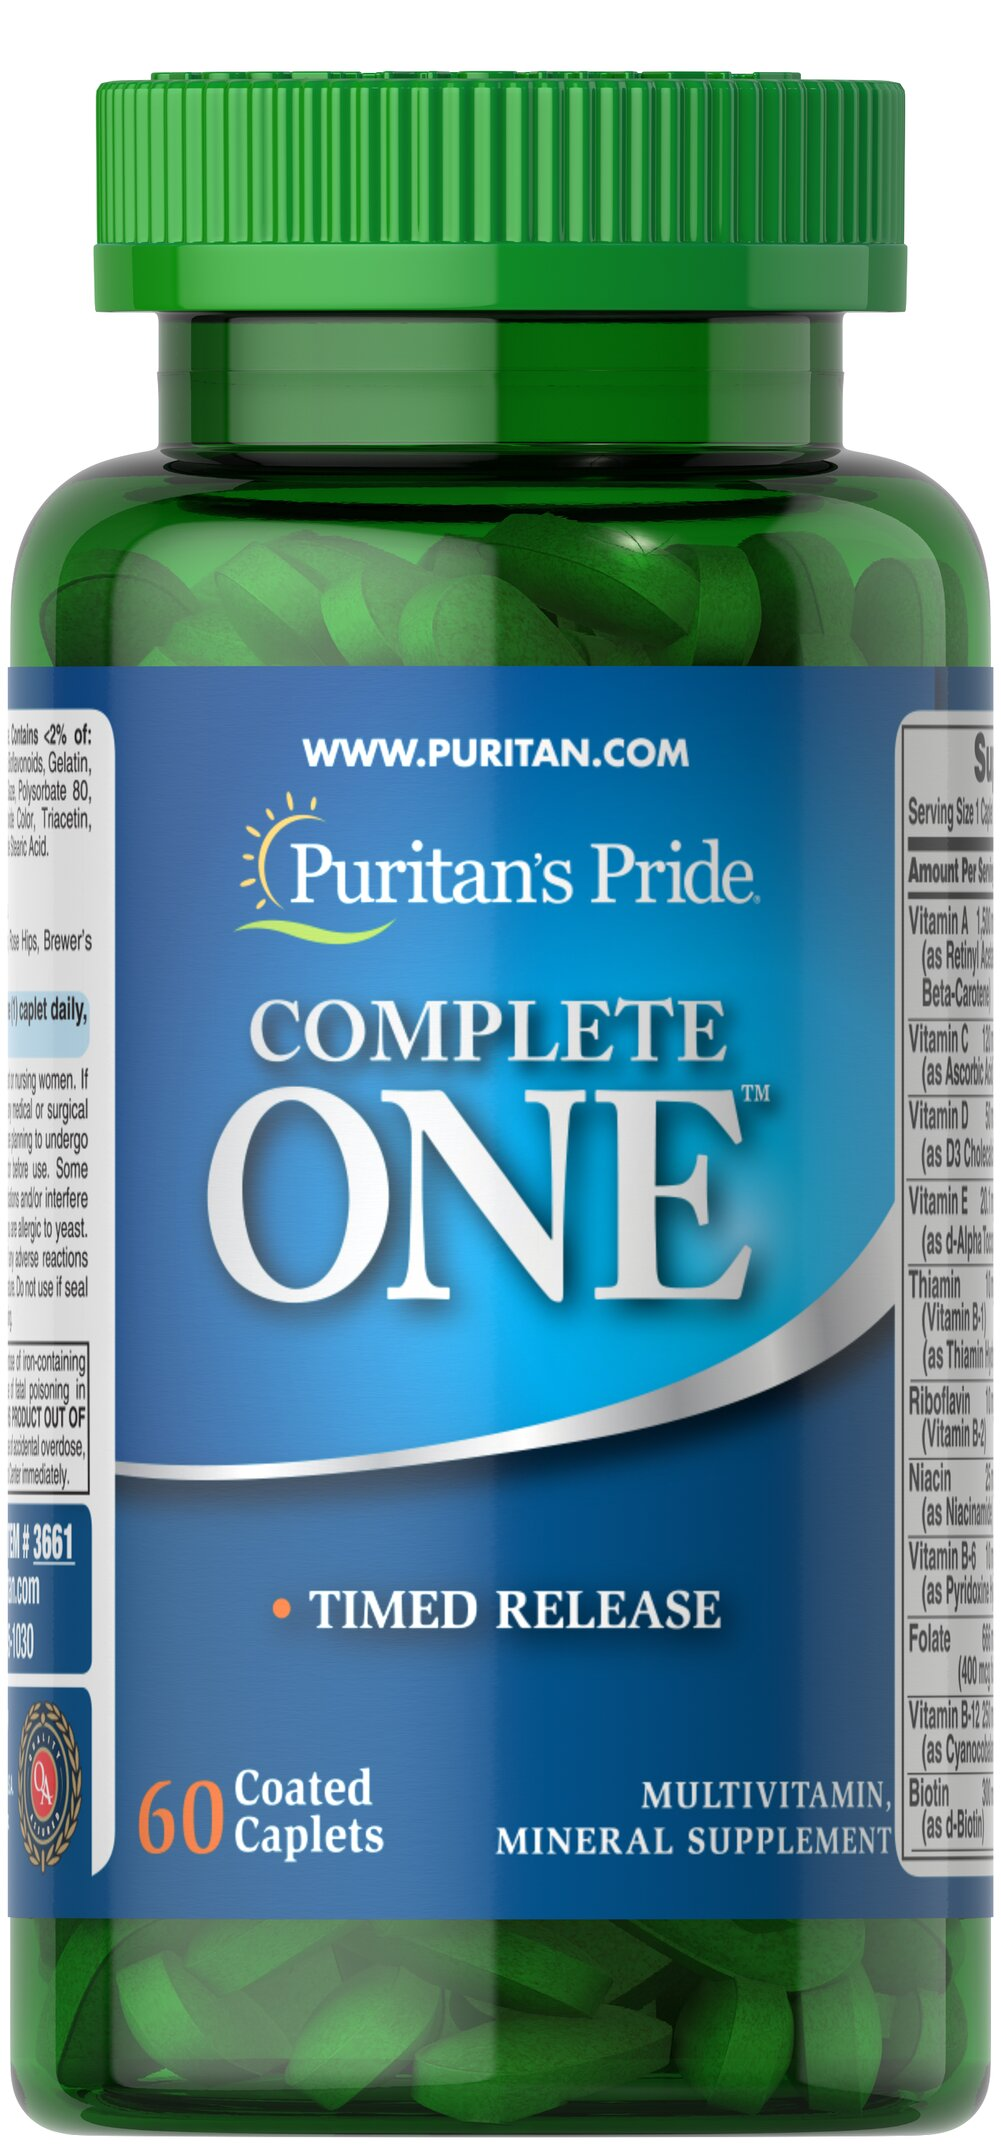 Puritan's Pride One™ Multivitamins Timed Release <p>Special multivitamins formula with beta-carotene. Each easy-to-swallow tablet provides: 28 essential nutrients, long acting B-Complex and C Vitamins, plus 13 Essential Minerals including Chromium, Selenium and Zinc.</p> 60 Caplets  $11.99